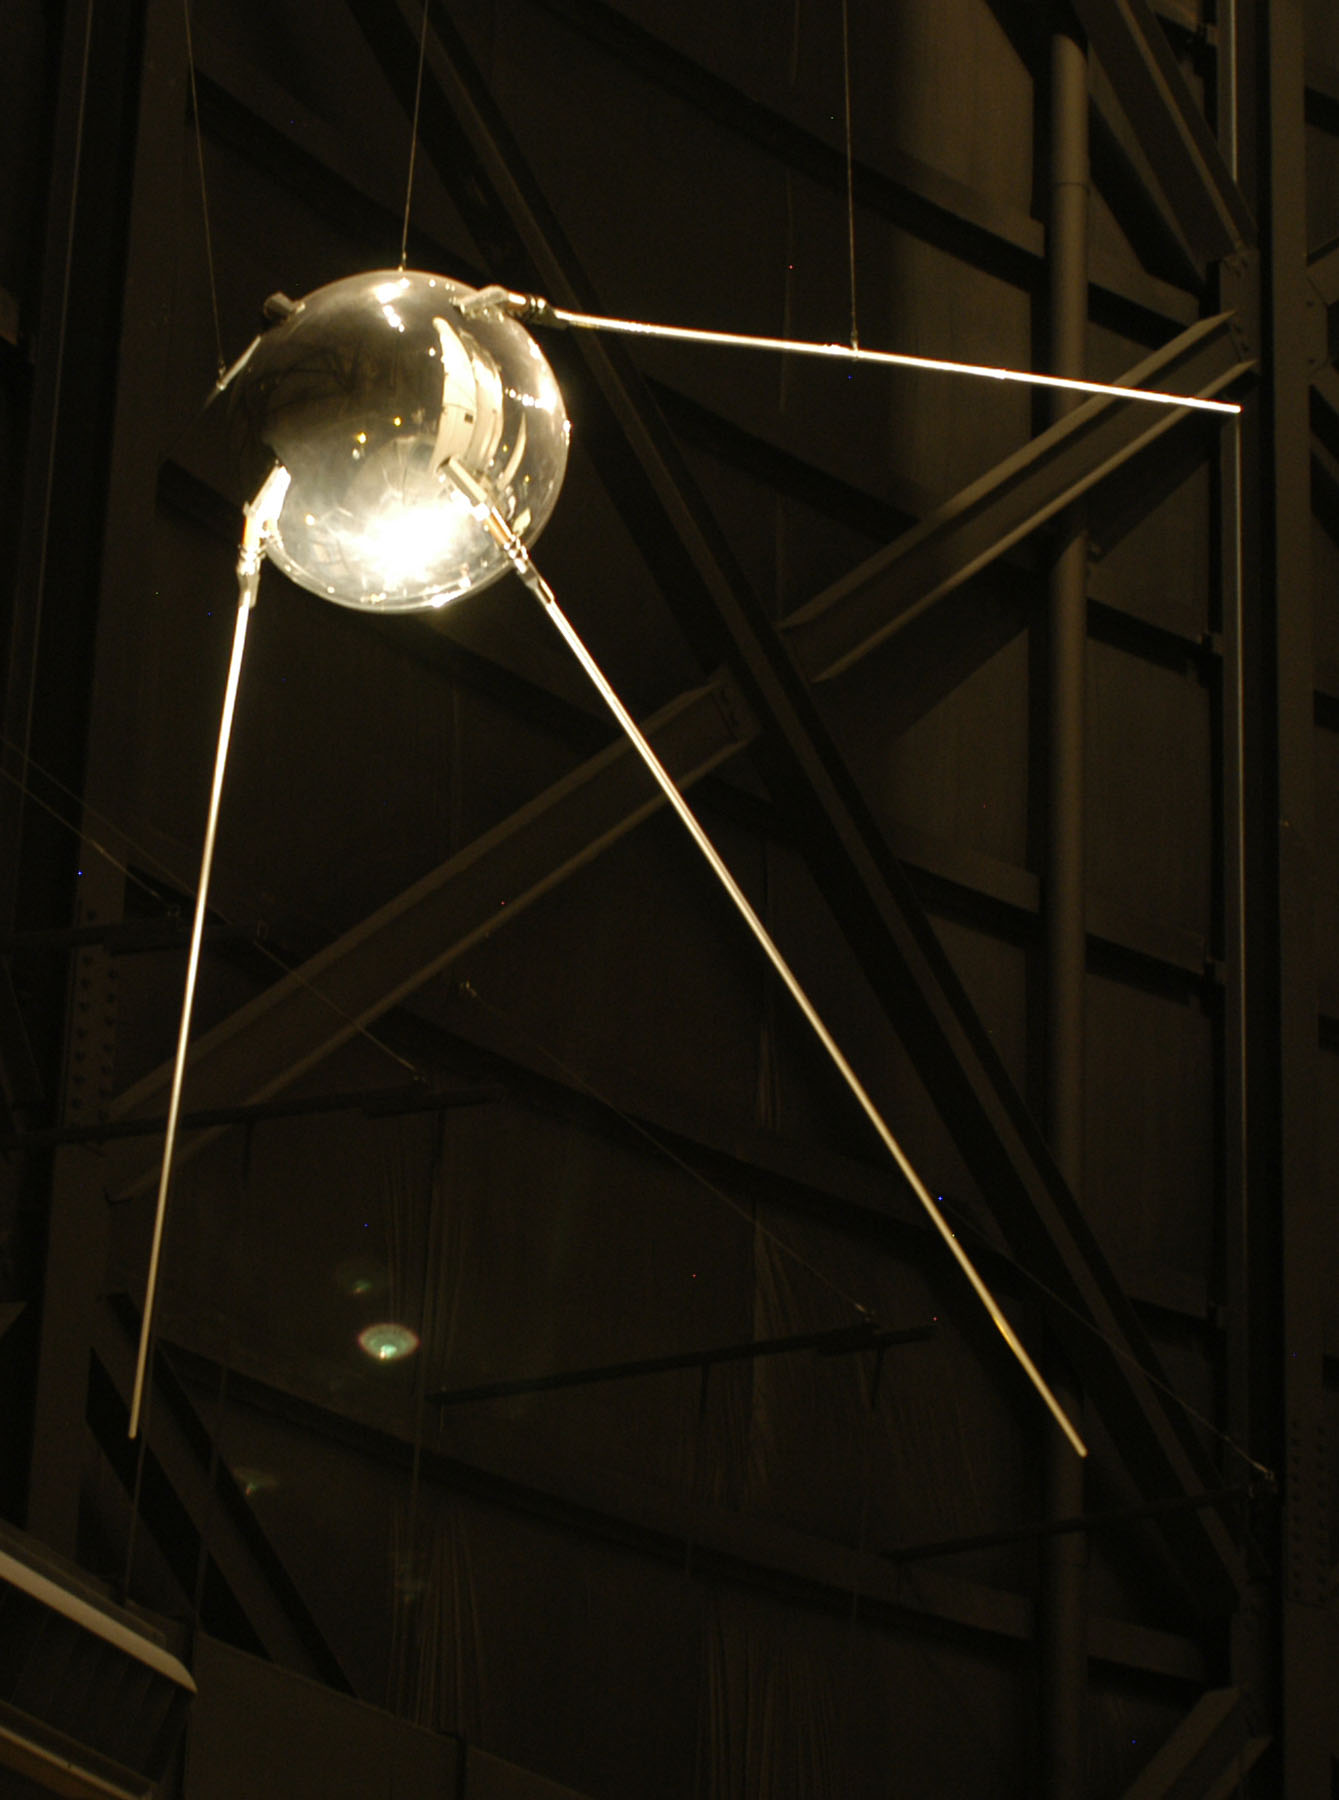 Sputnik, model hanging in Smithsonian Air & Space Museum (Wikimedia photo via Polytechnic U.S. History)